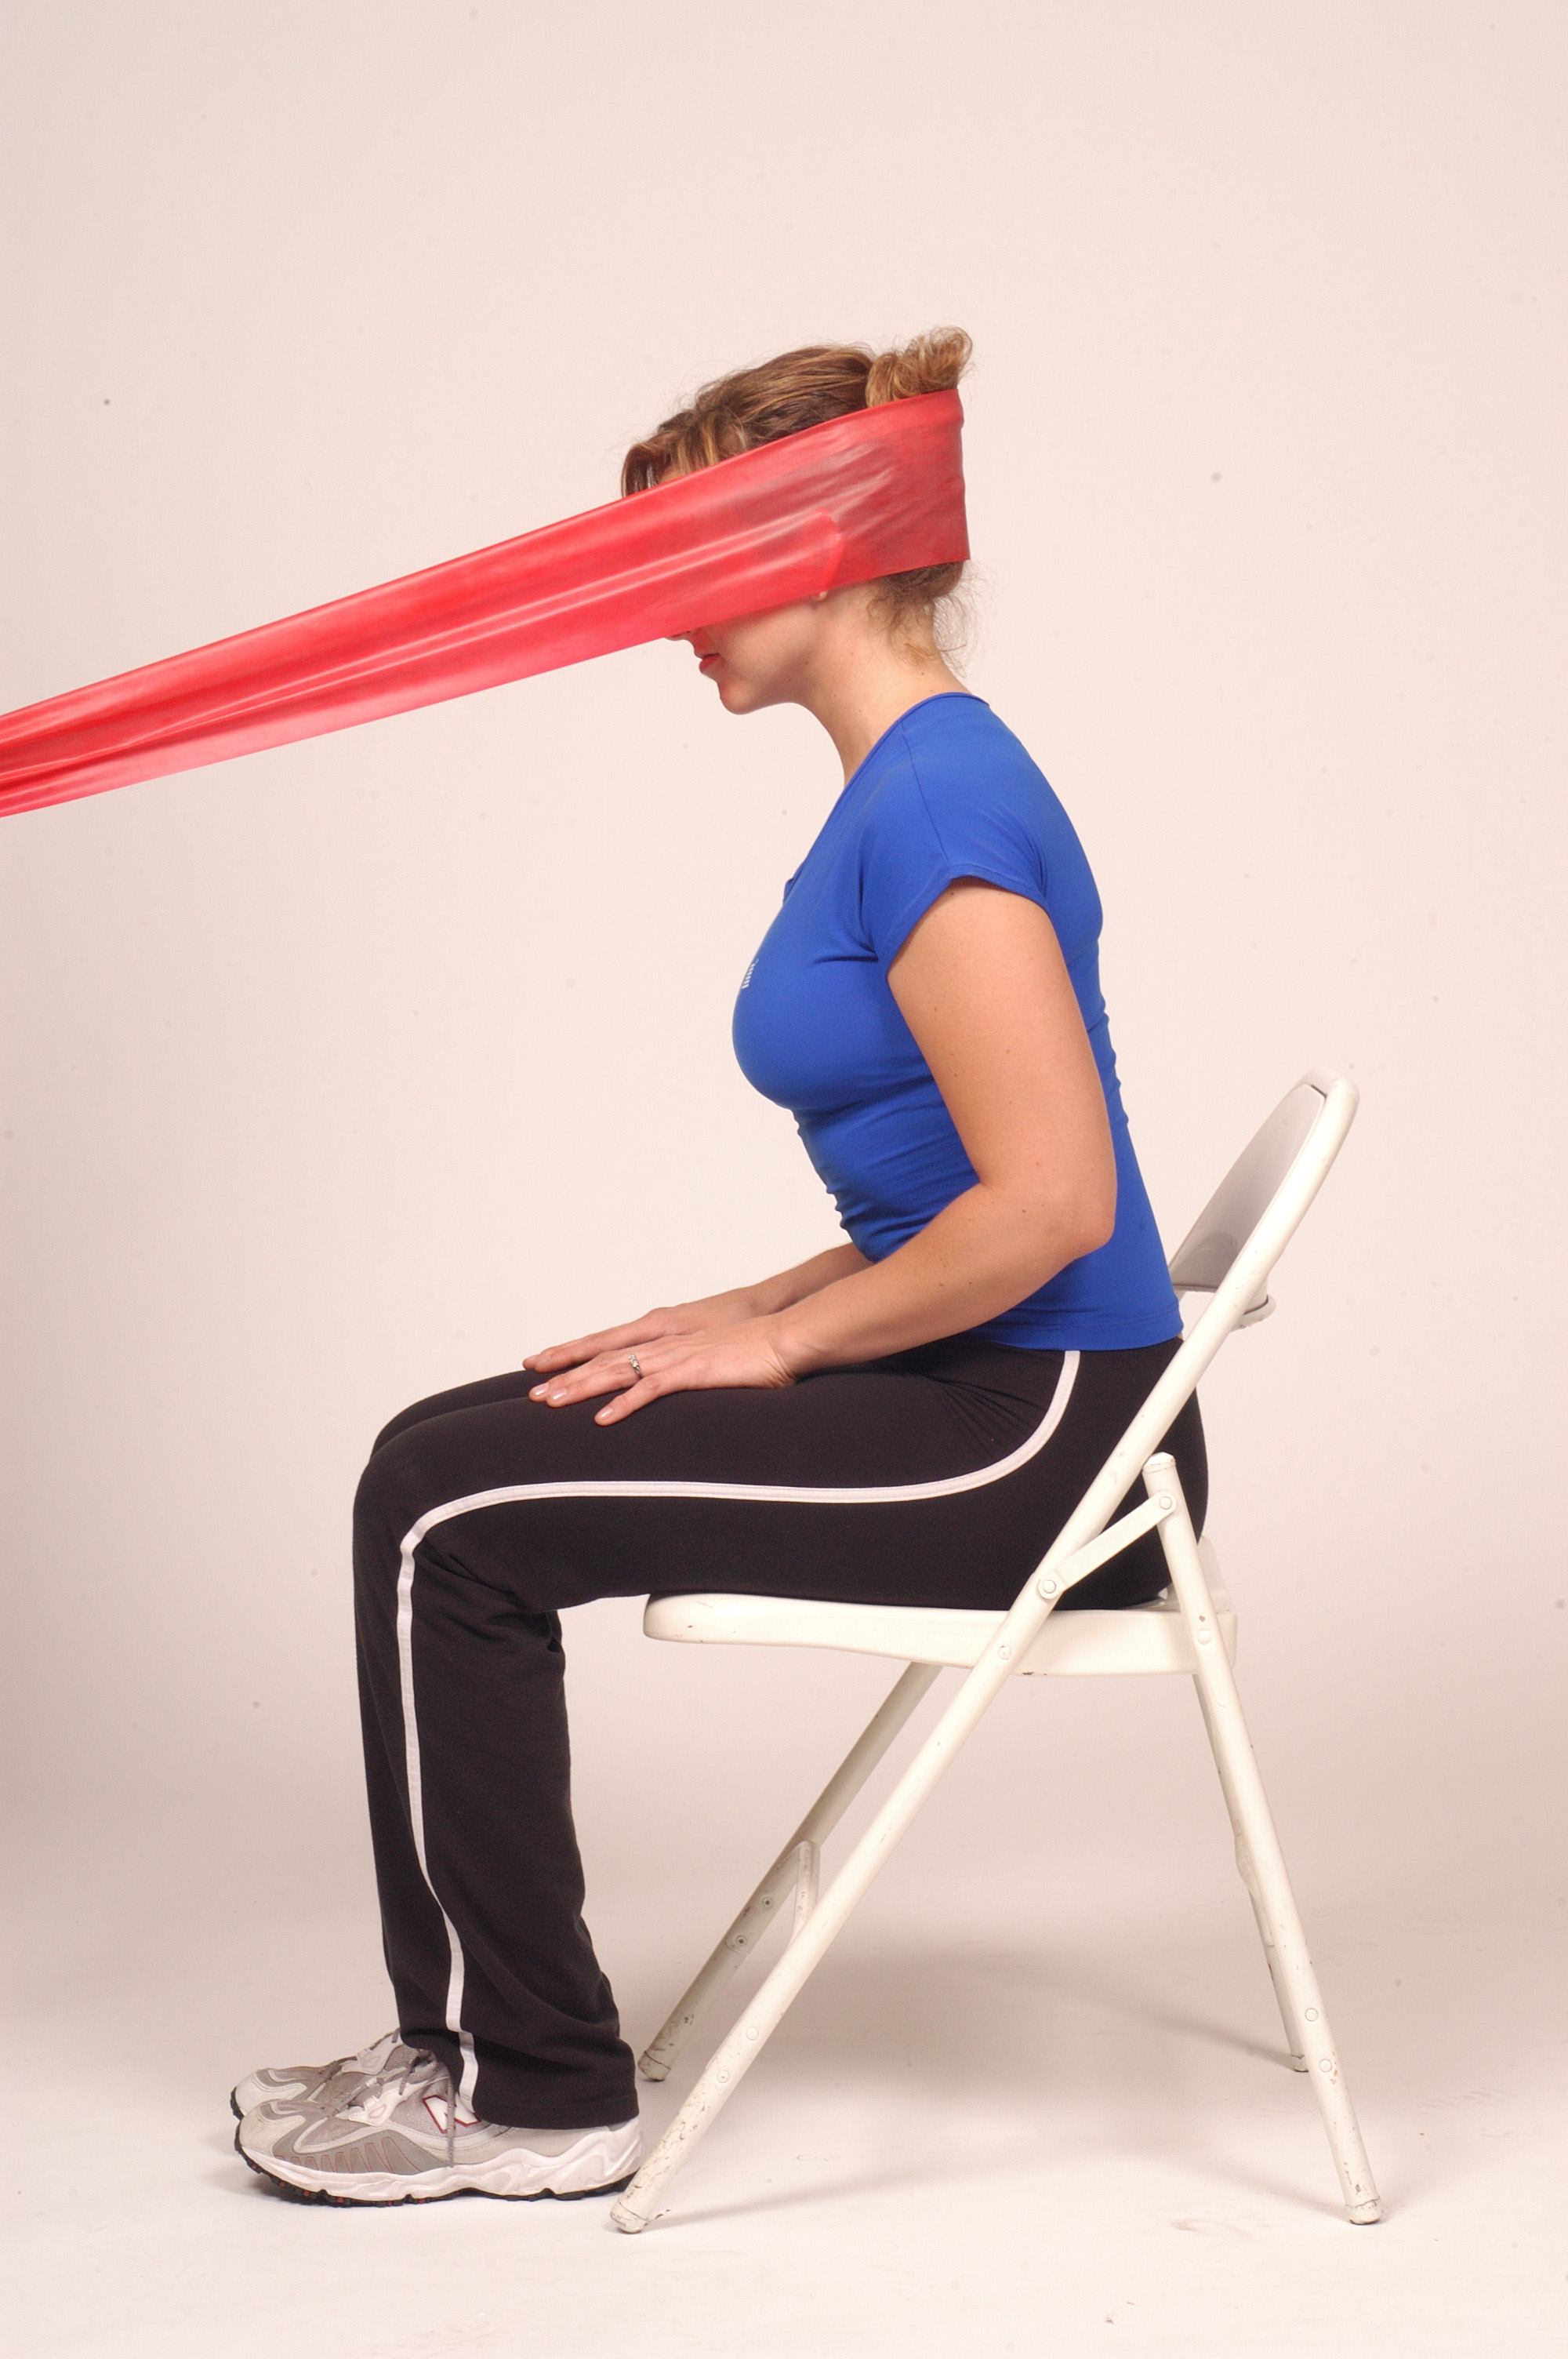 Thera-Band exercise protocol for chronic neck pain ...